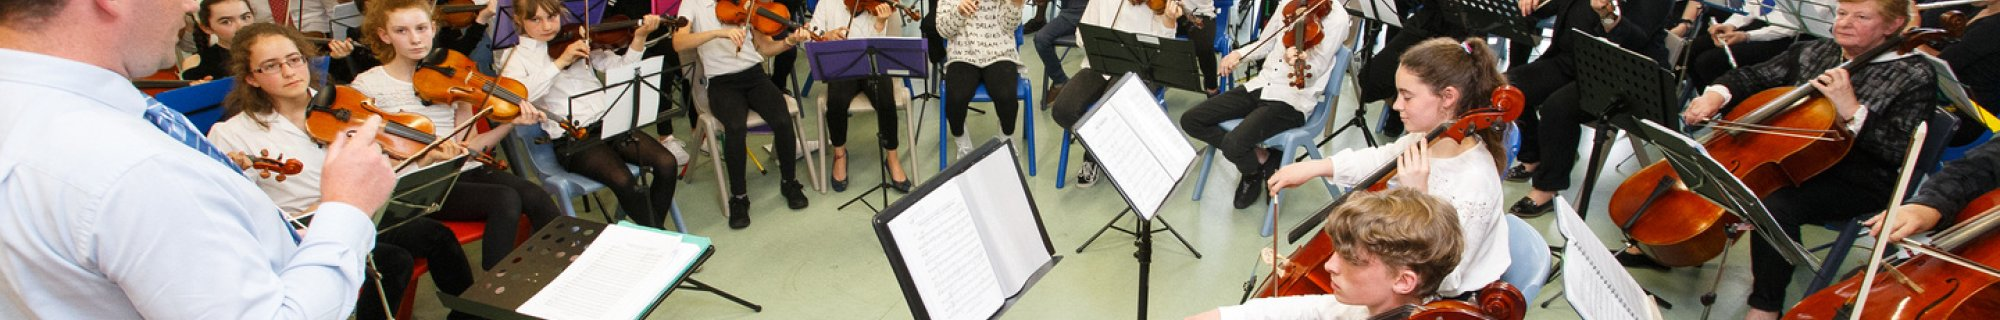 Image of intergenerational orchestra